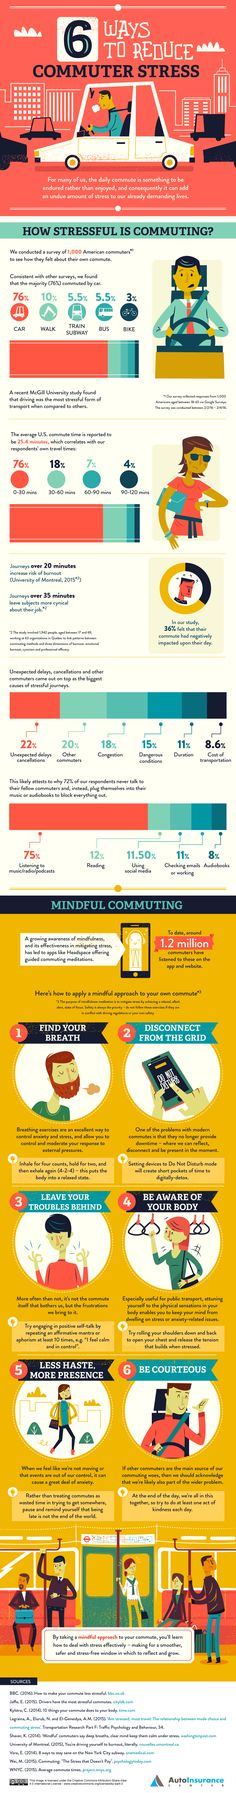 How to Reduce Commuter Stress: 6 Helpful Tips [Infographic], via @HubSpot